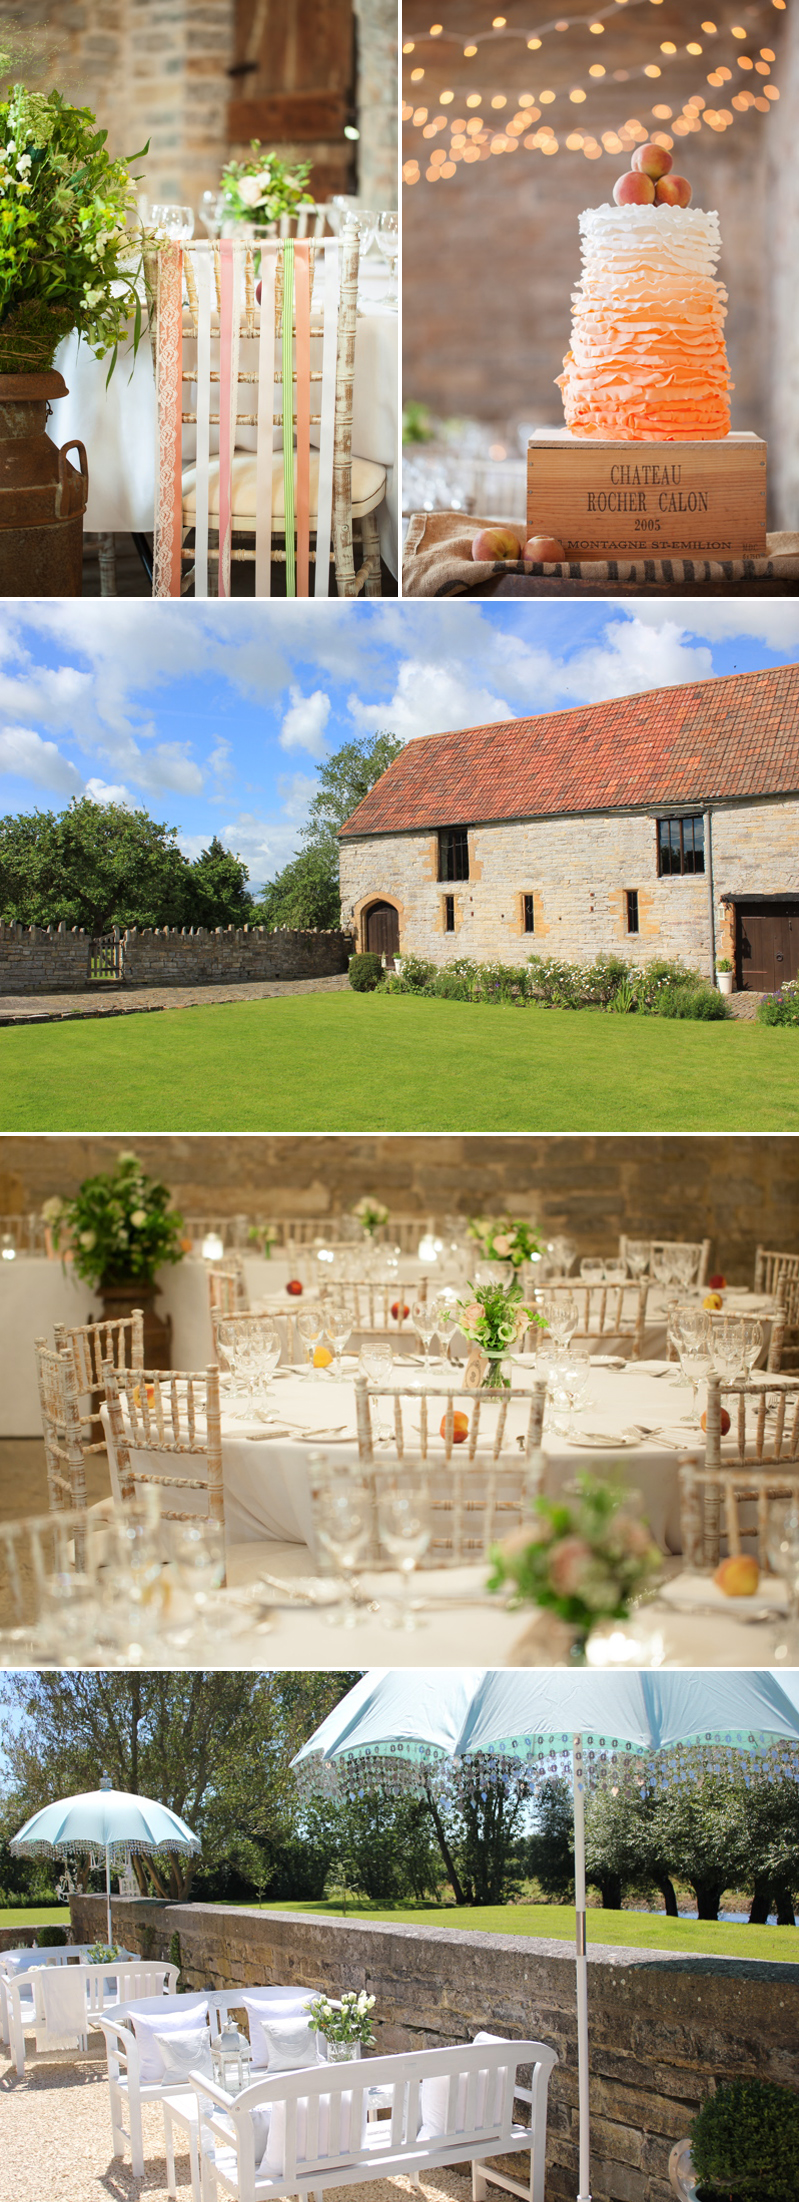 Coco Wedding Venues - Hip Hip Hooray, Coco Collection, Almonry Barn.